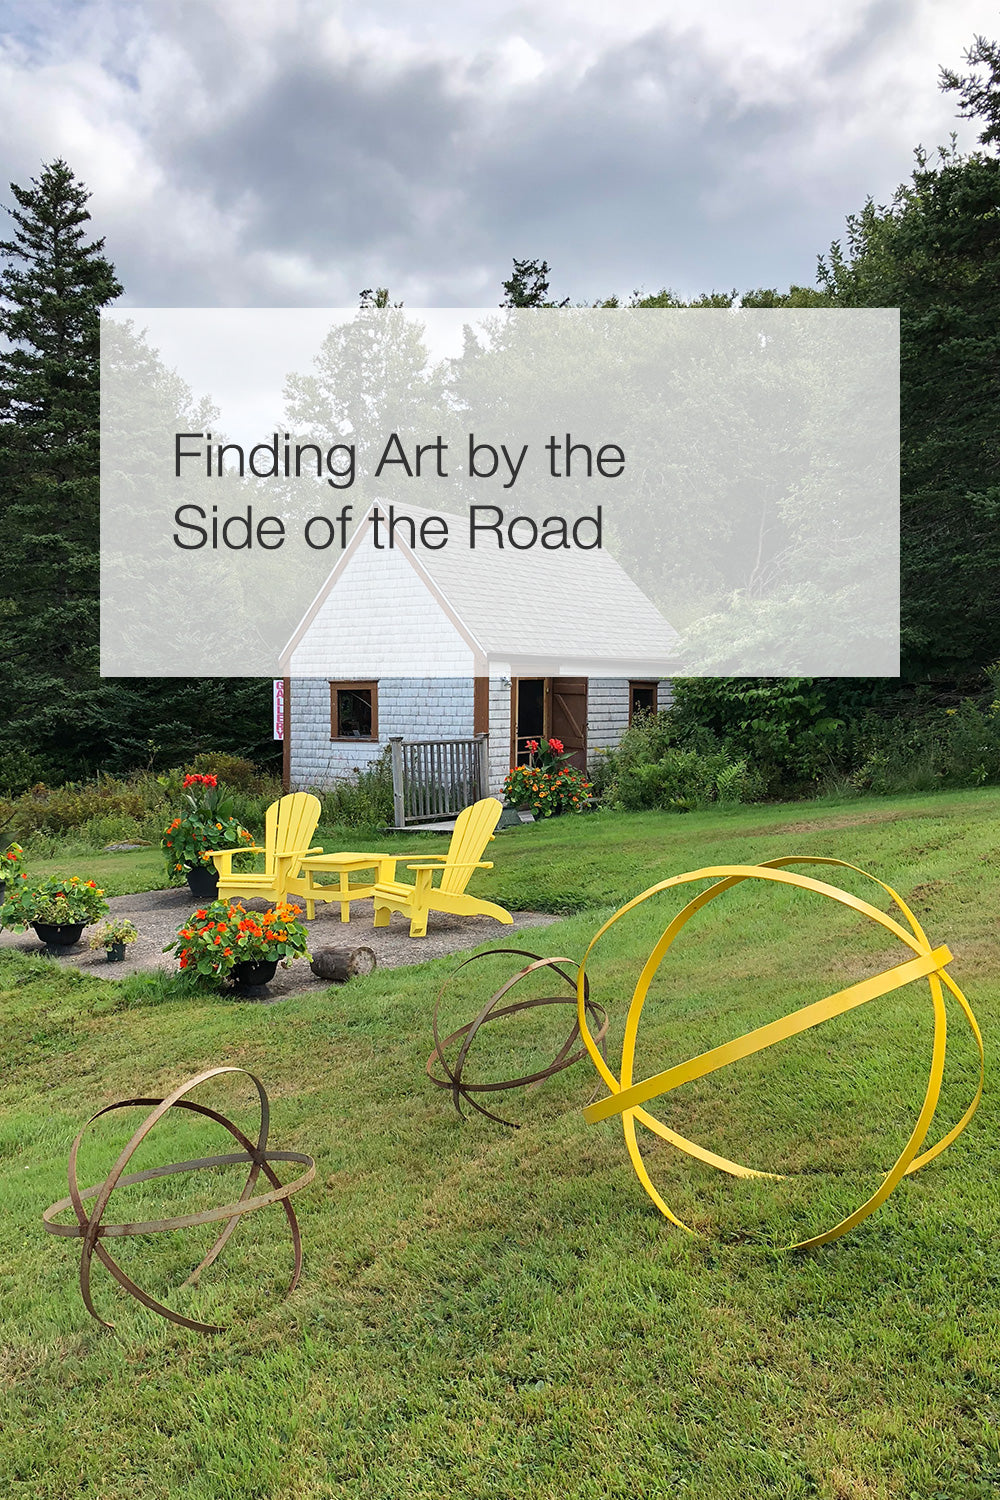 Finding Art by the Side of the Road